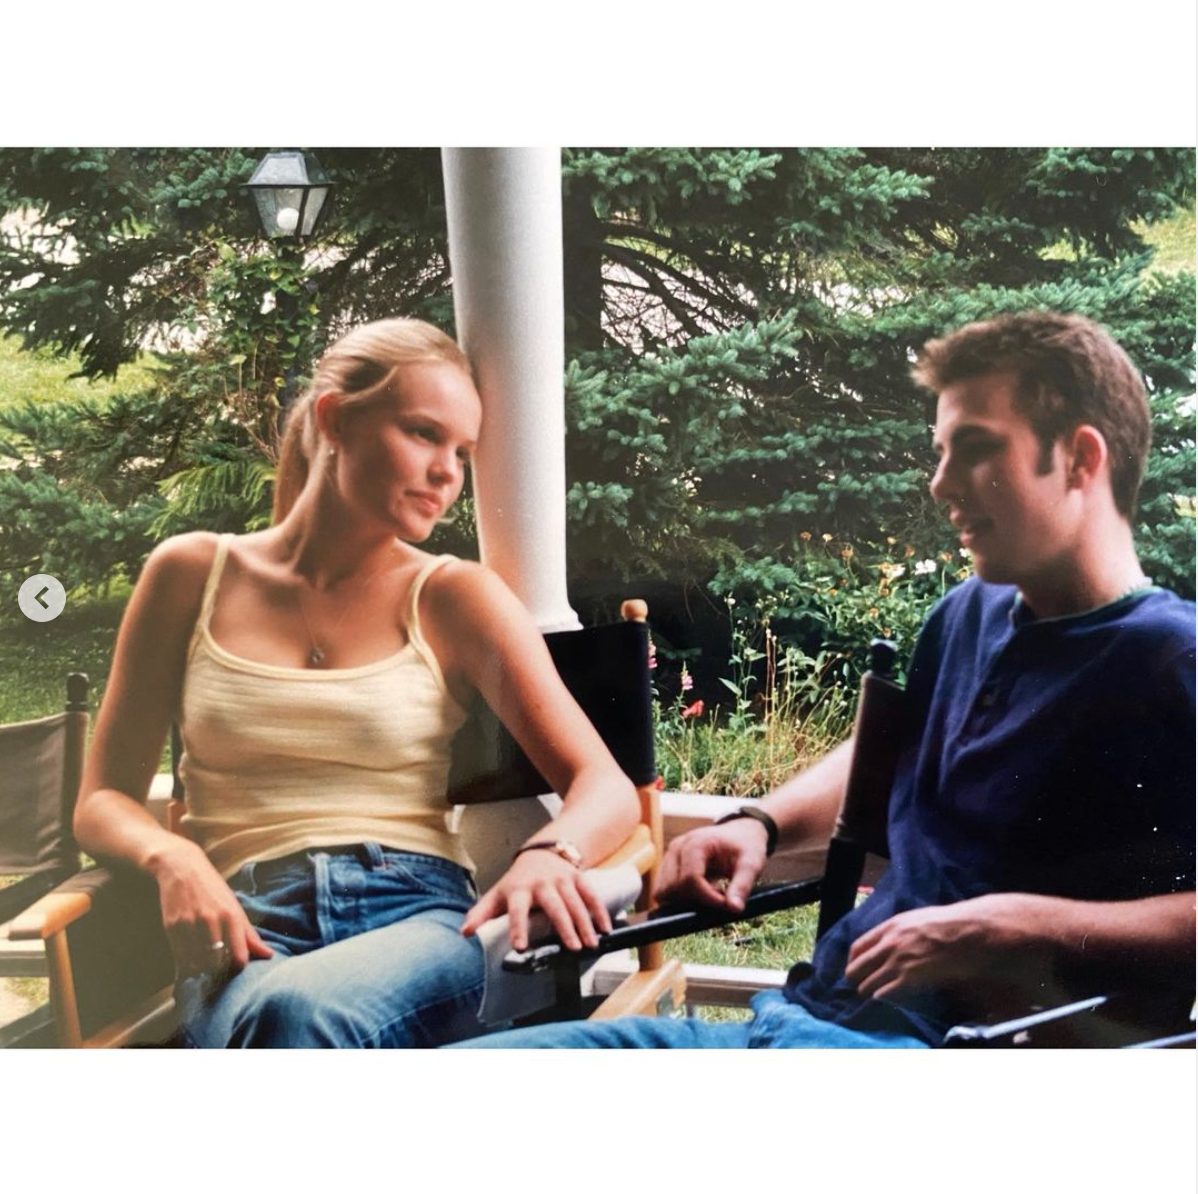 Kate and Chris on set in the throwback photo